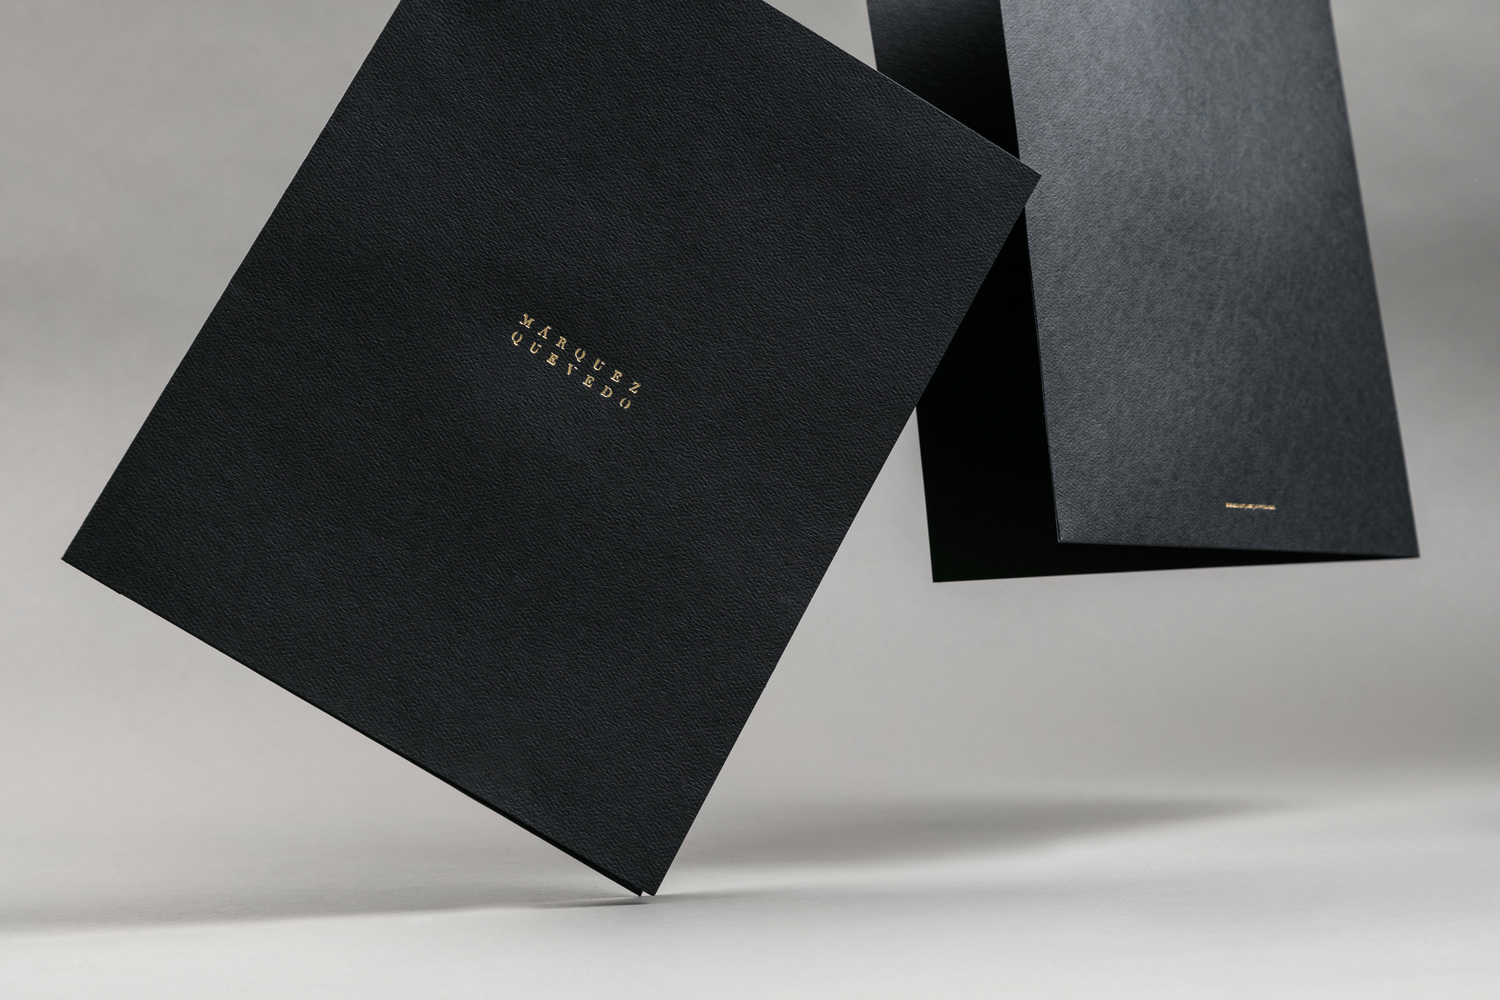 Brand identity and gold foiled folders for Mexican architectural studio Marquez Quevedo by La Tortillería